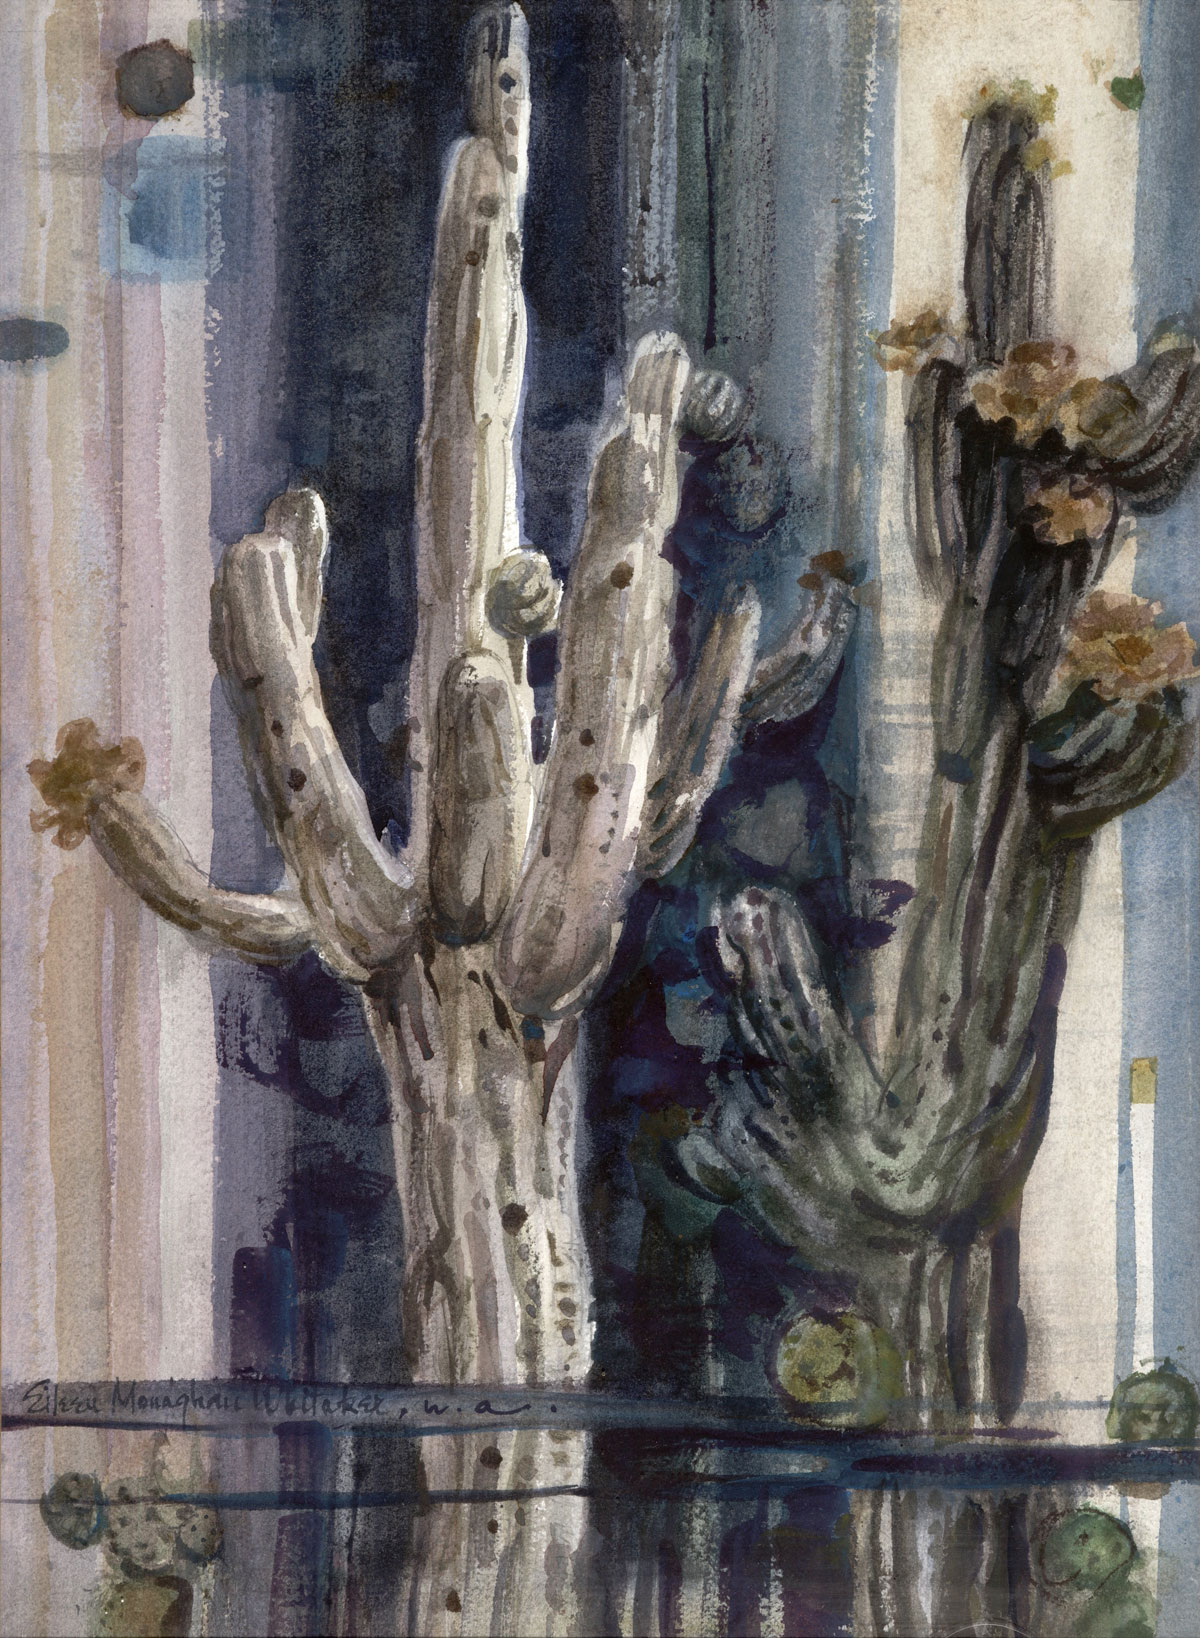 """Saguaro Design"" 1975 © Eileen Monaghan Whitaker 22x16 inches Watercolor"